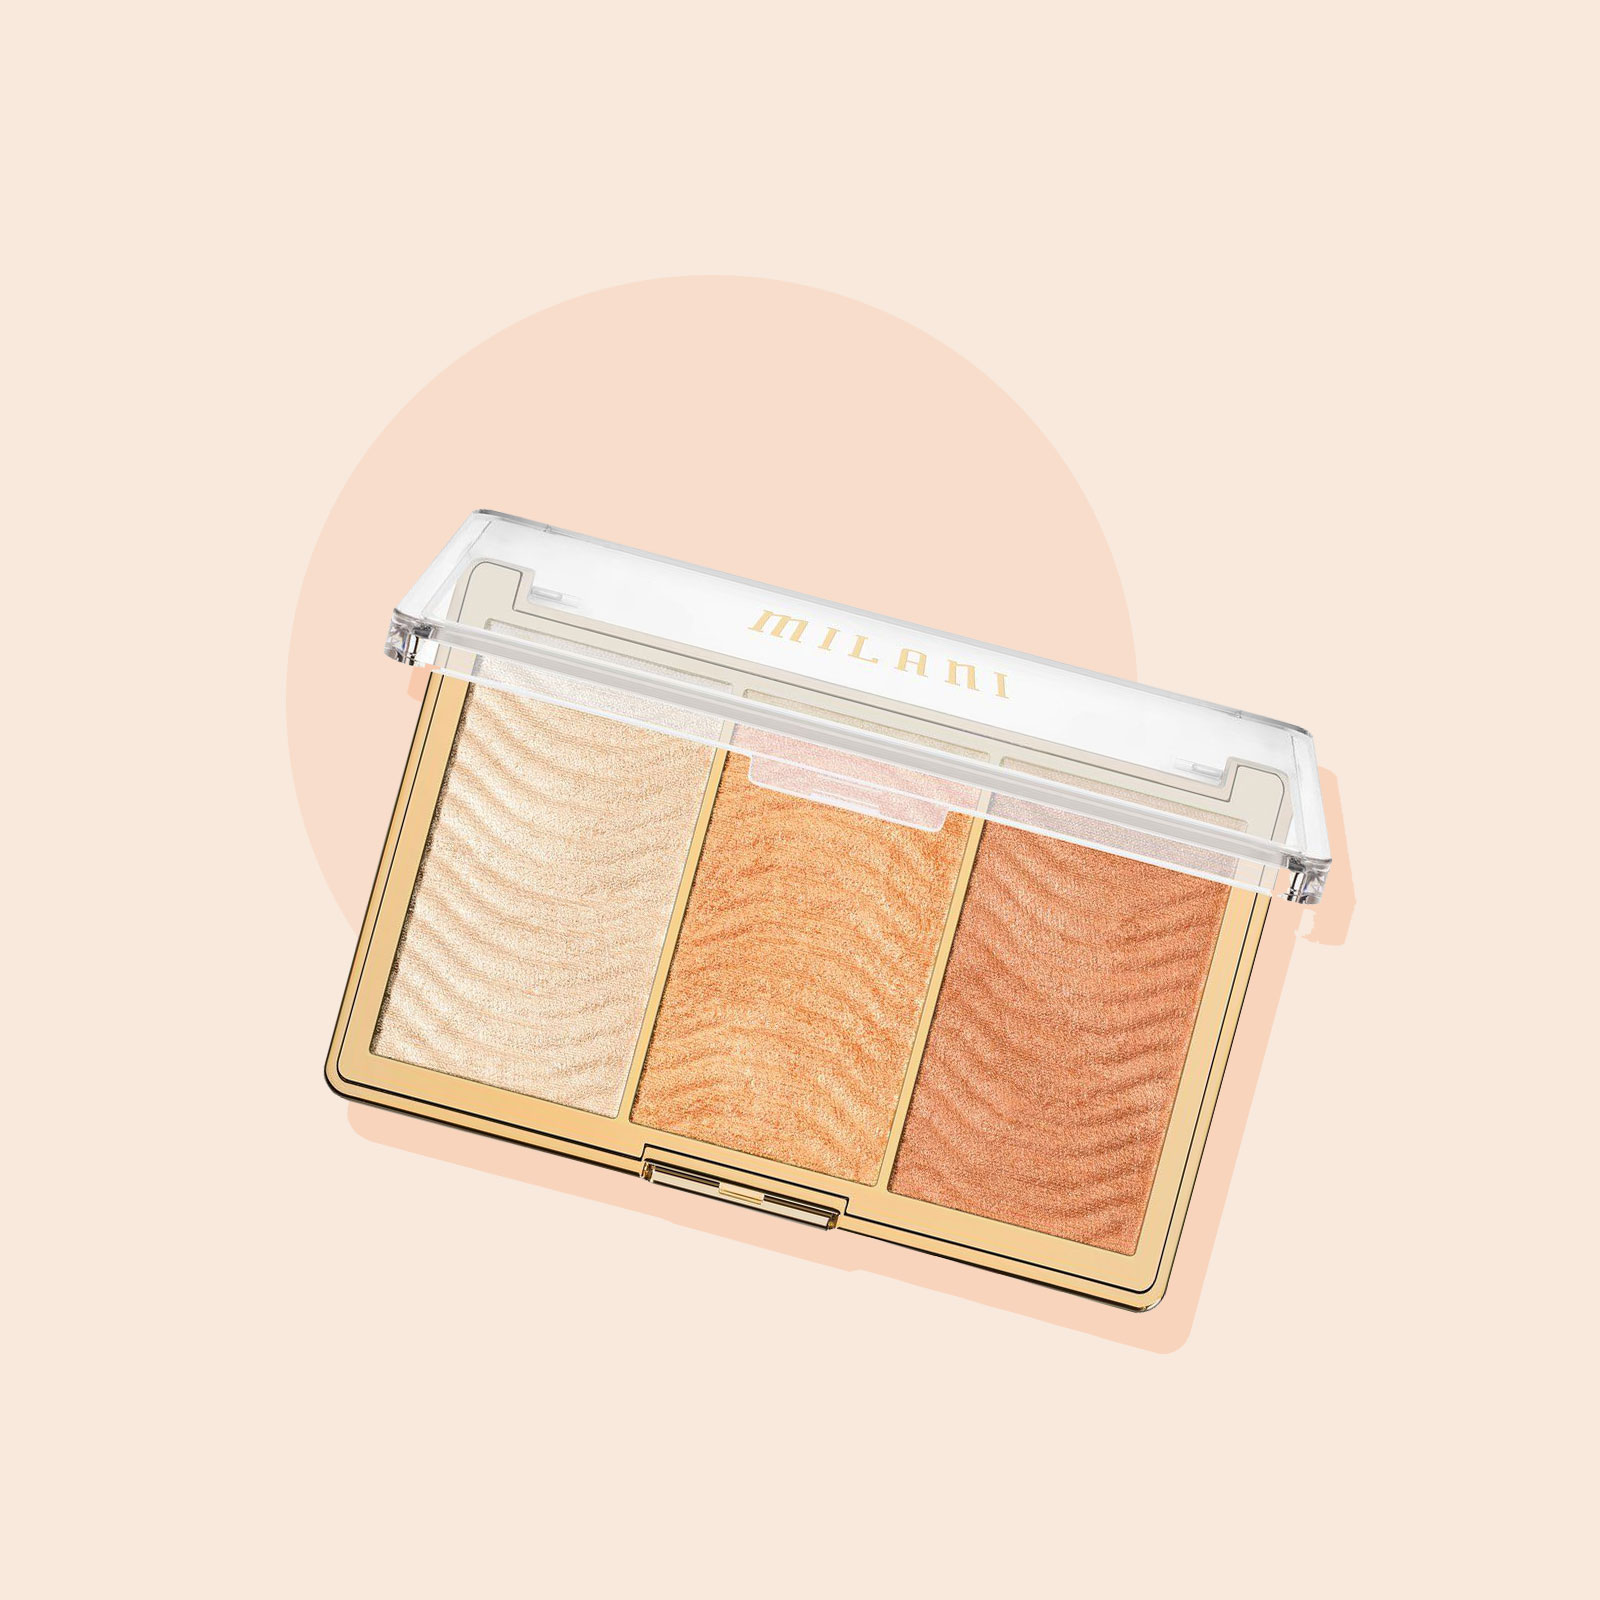 The Best Drugstore Highlighters for an Instant Glow